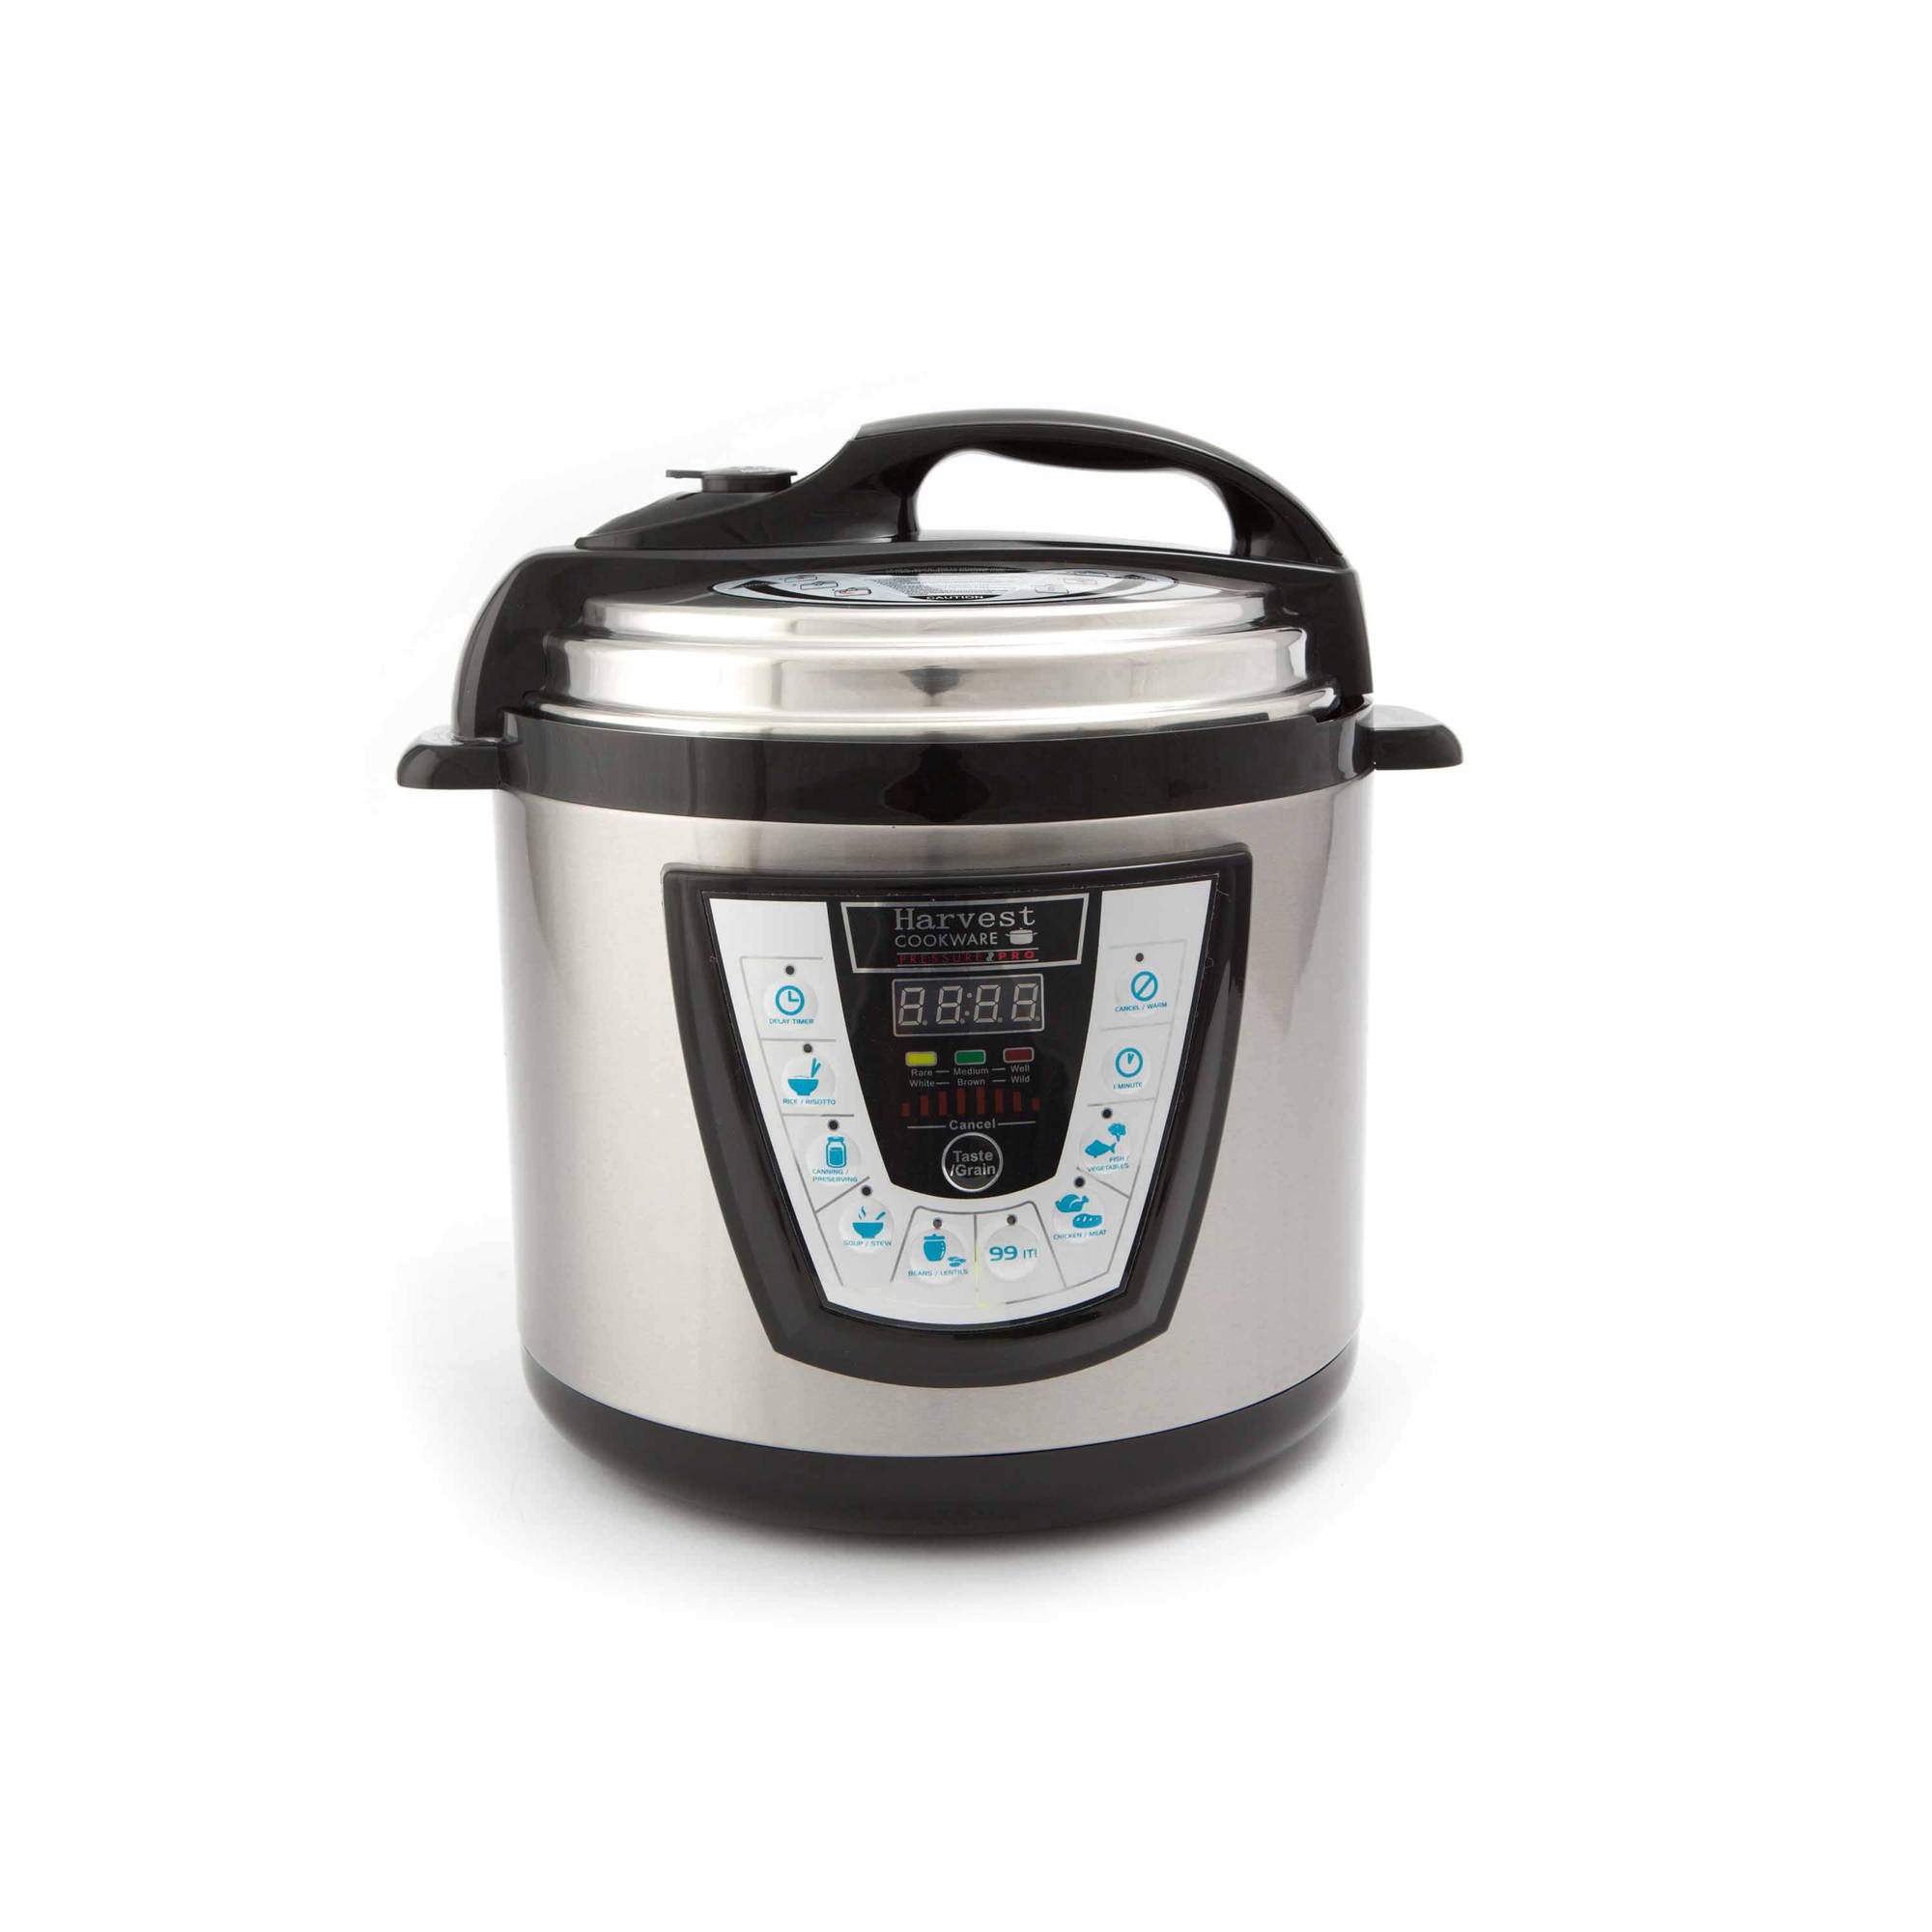 Harvest Cookware Electric Original Pressure Pro 4-Quart Pressure Cooker, Black